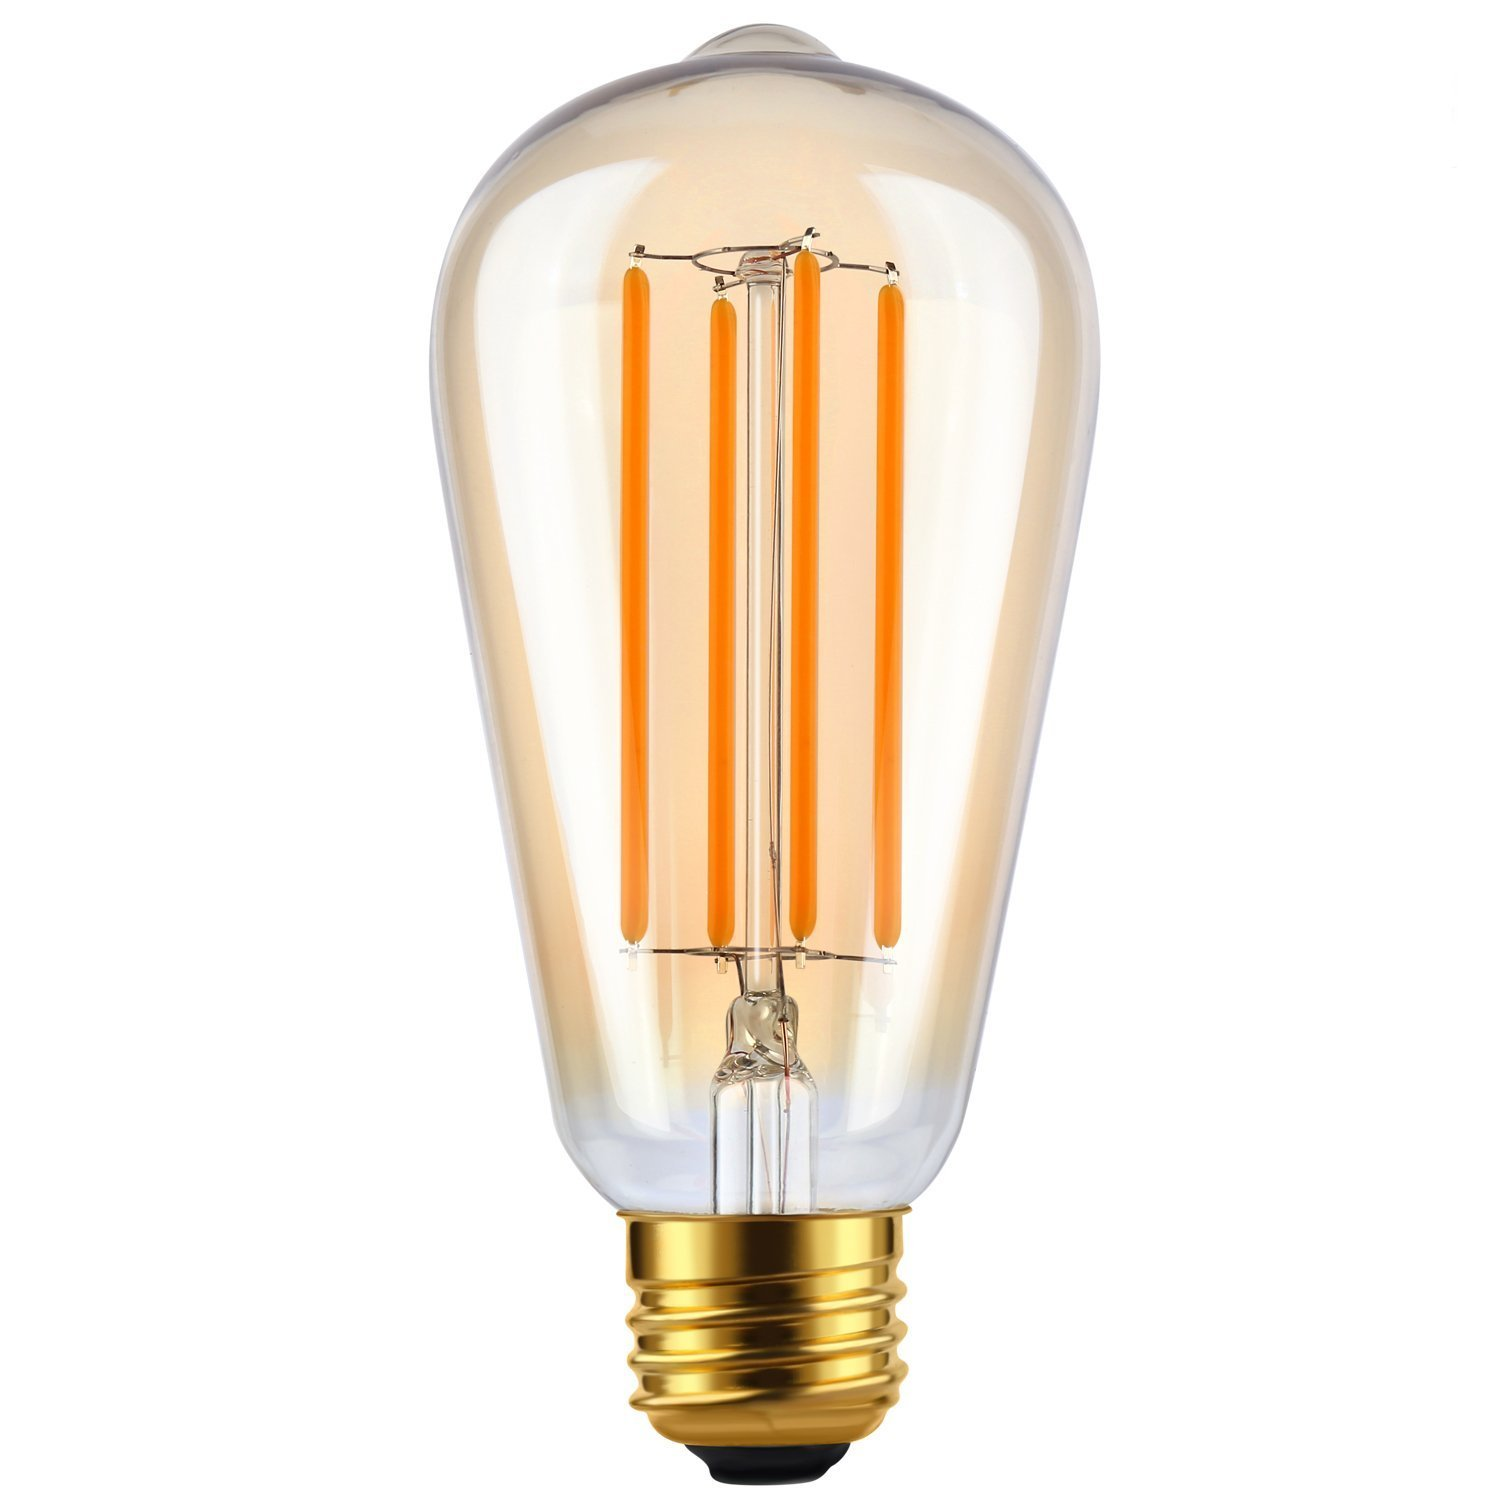 LETO ST64 Vintage Filament LED Light Bulb Dimmable [edison style][Energy Saving 4W LED- 40W Equivalent ][UL Listed[2200K Warm]E26 Based [led bulb home]][Amber Tinted Color]-1Pack